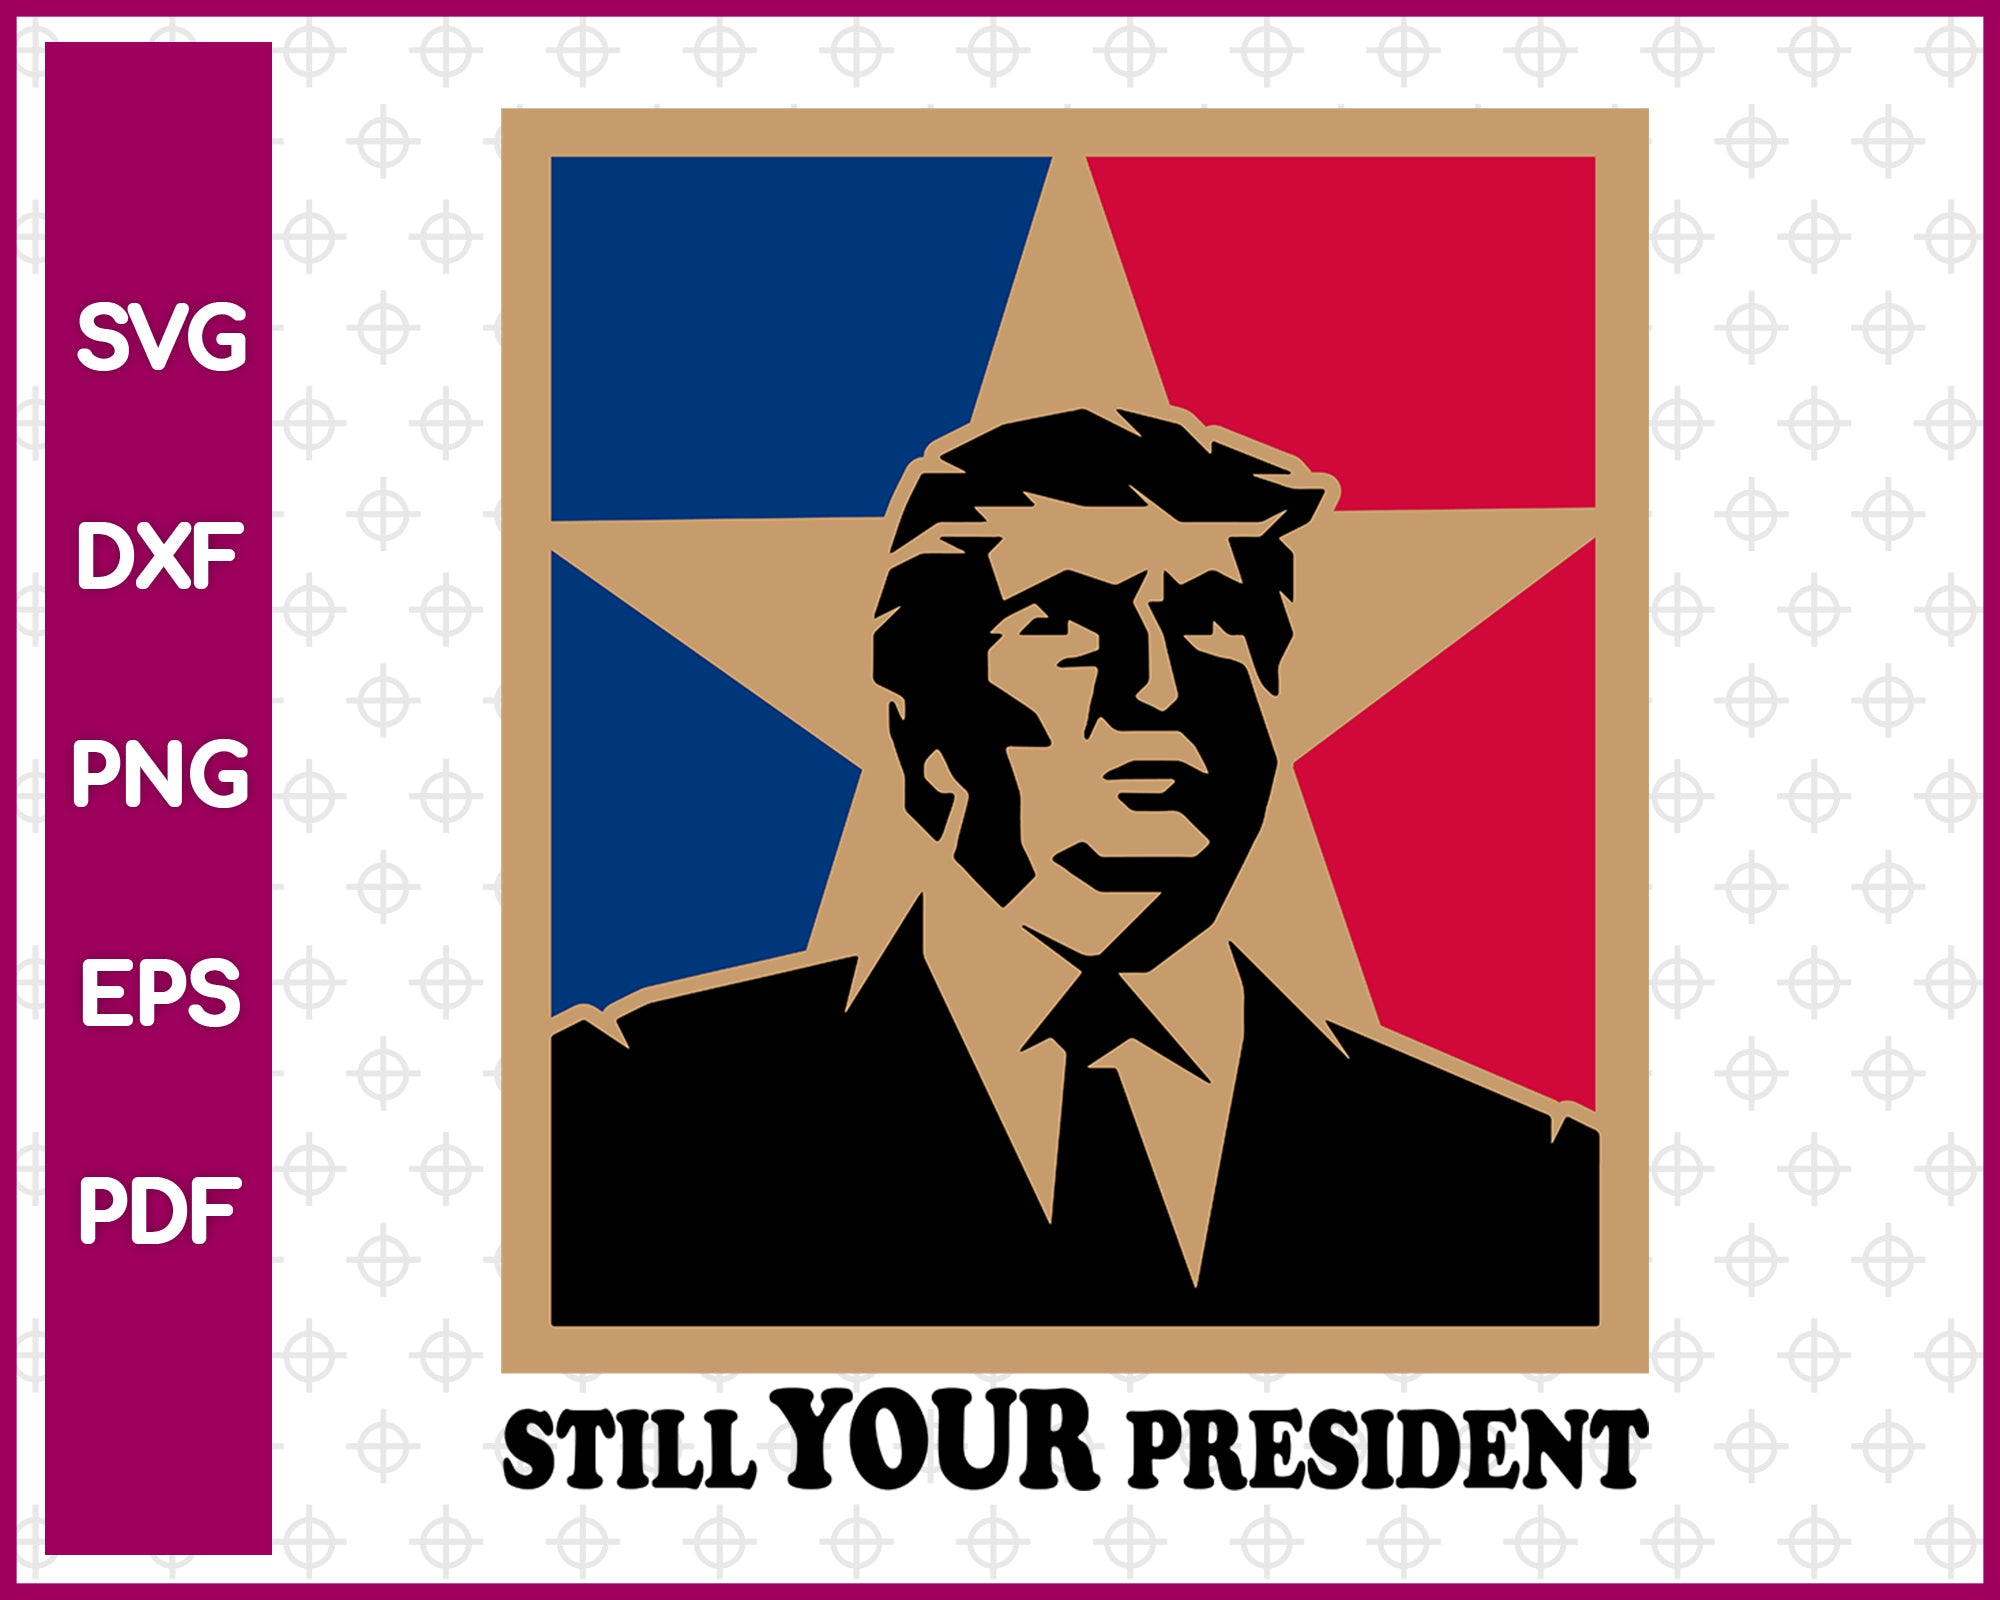 Donald Trump Still Your President svg dxf png eps pdf File For Vector Cricut or Silhouette